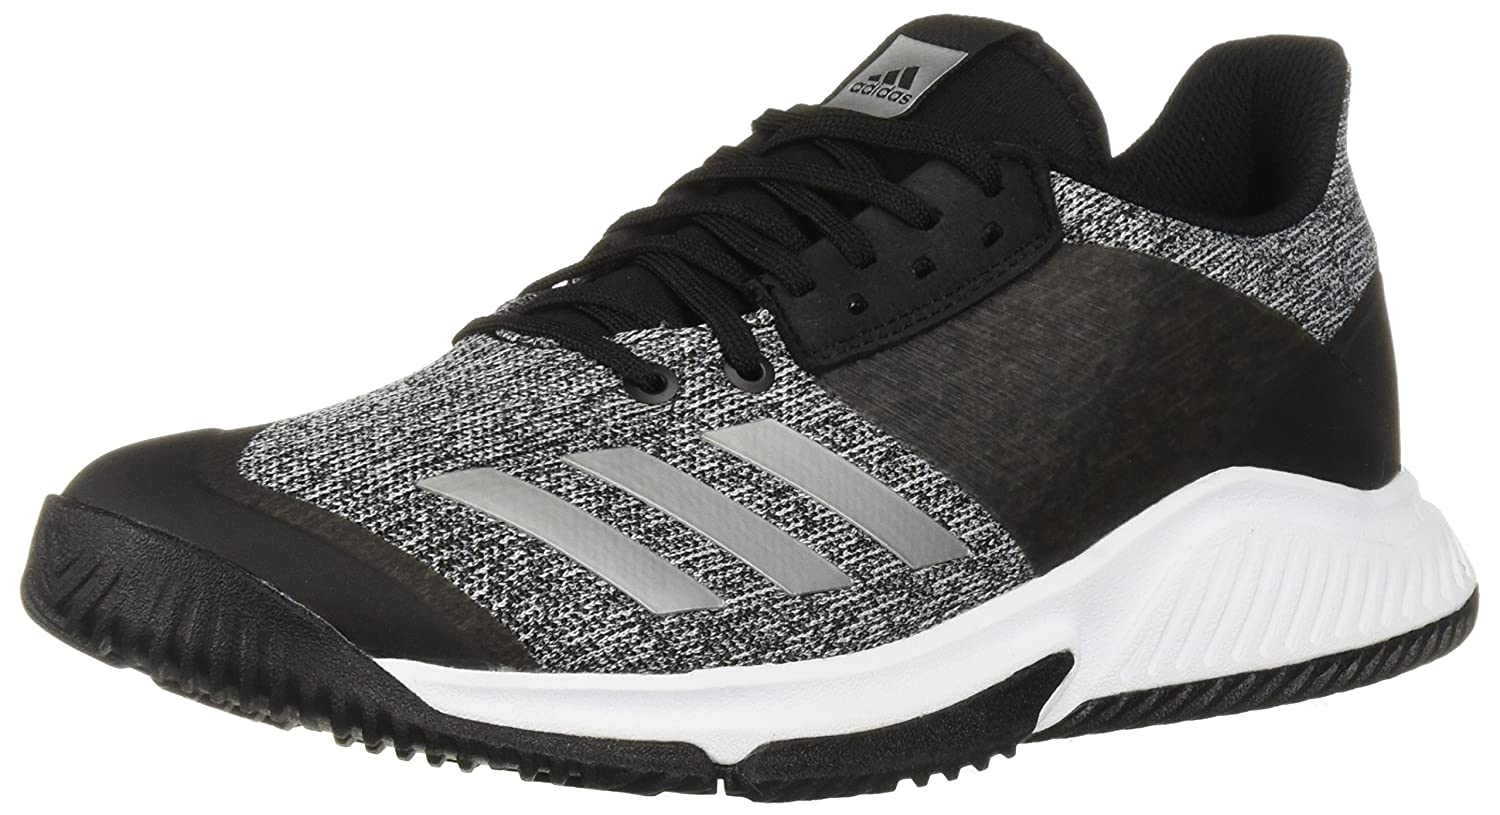 adidas Women's Crazyflight Team Volleyball Shoe B077X4JPMM 9.5 B(M) US|Black/Silver Metallic/White